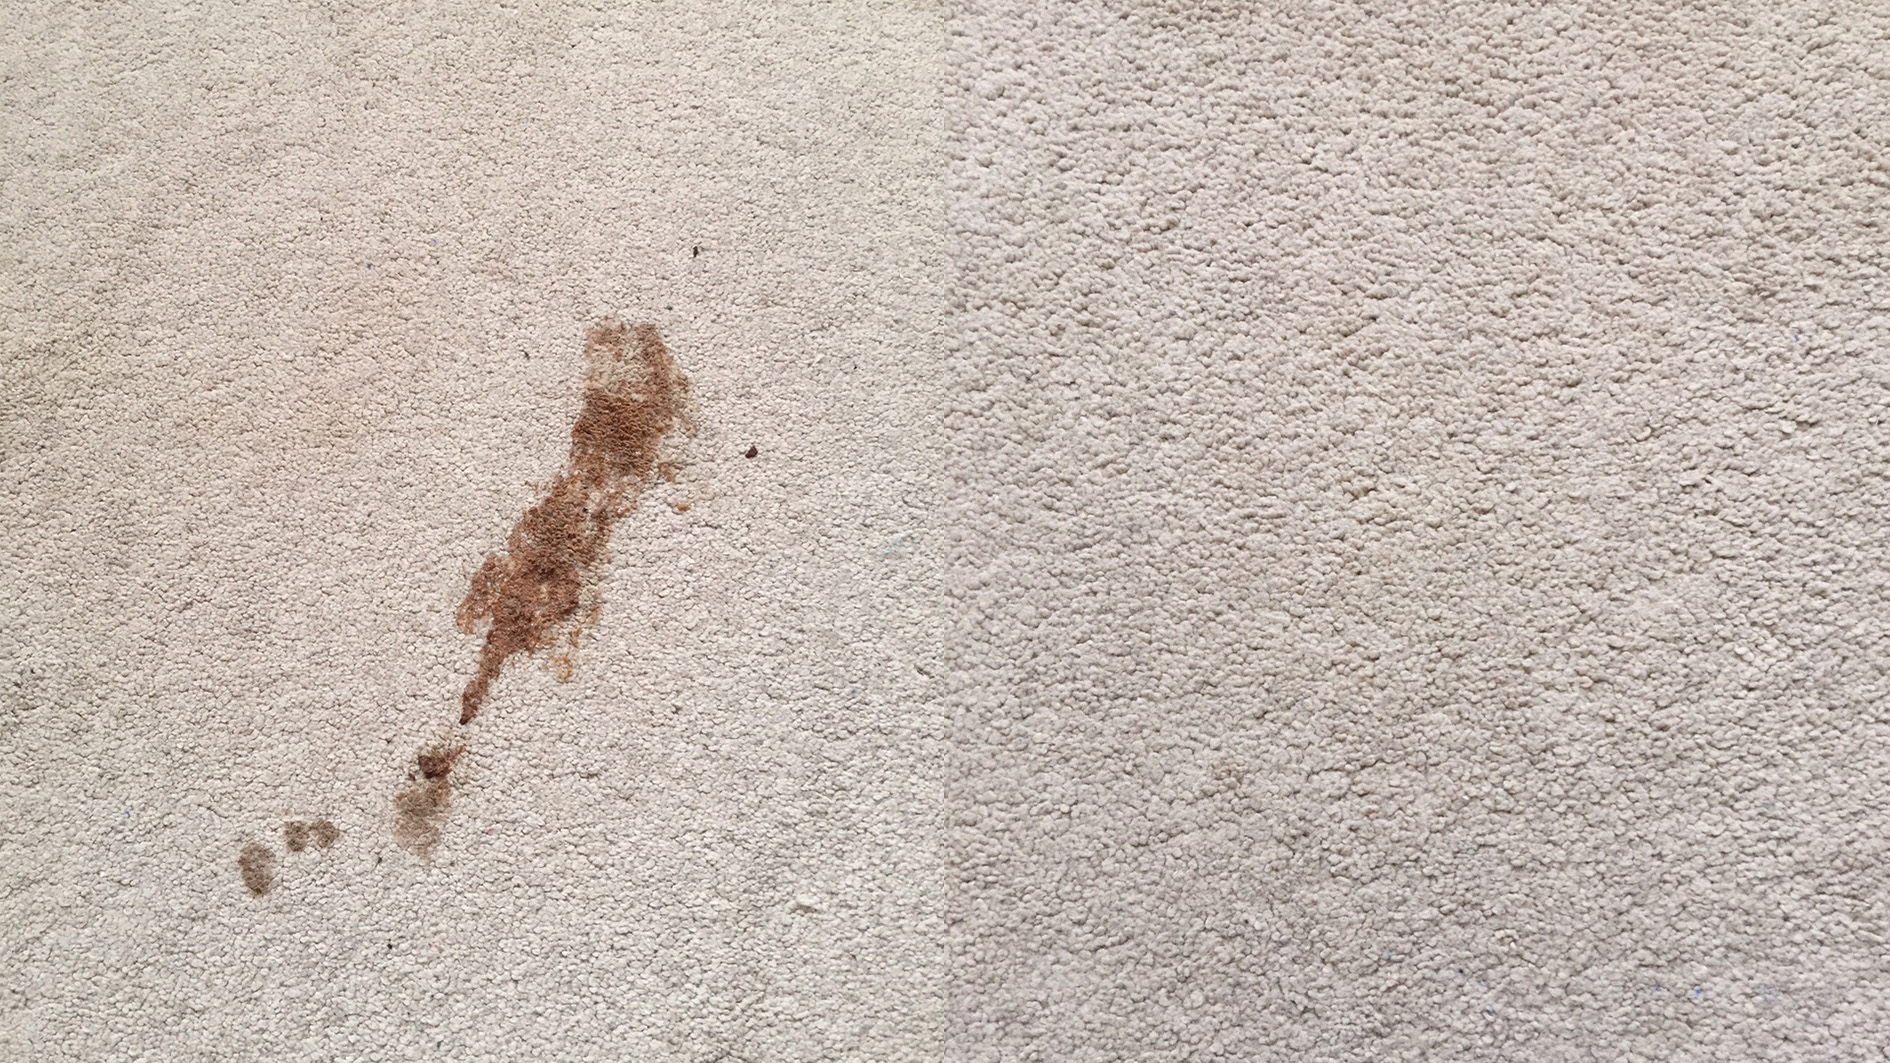 Puppy accident stain